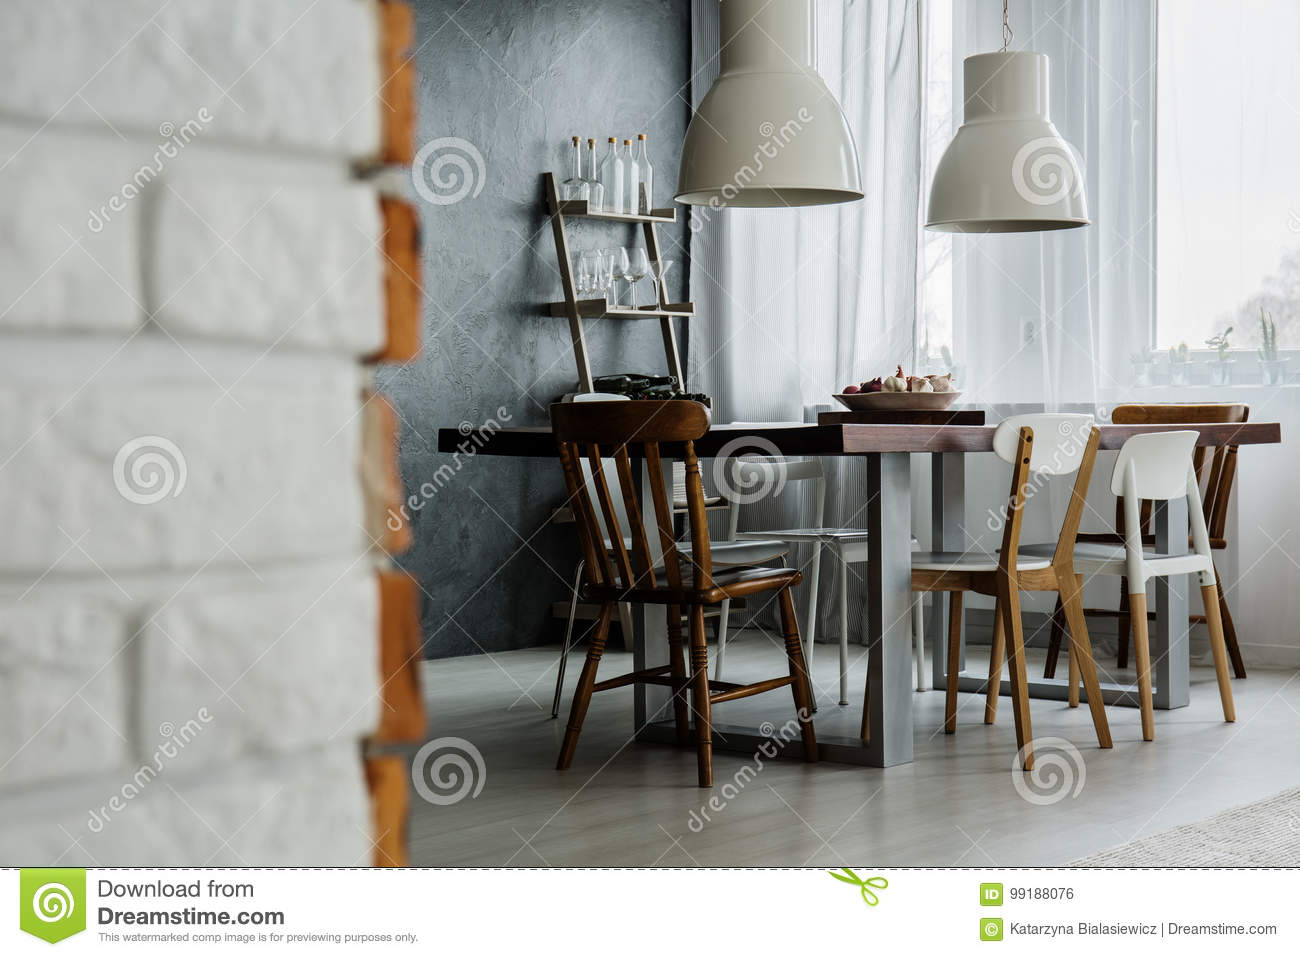 Chic Industrial Dining Room Design Stock Photo Image Of Room